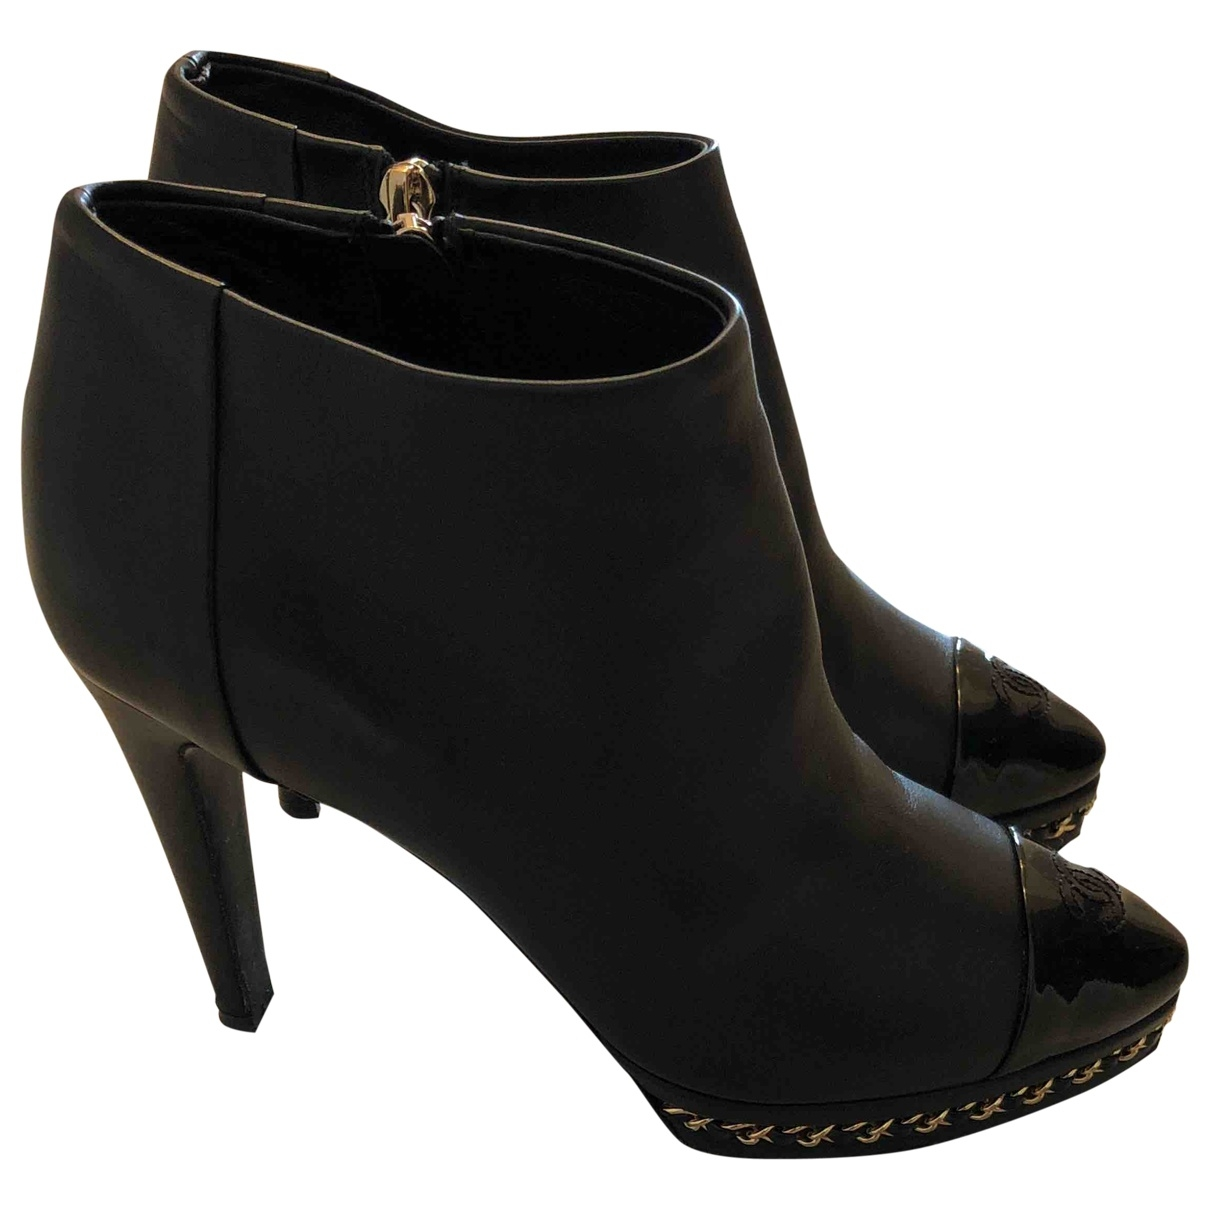 Chanel \N Black Leather Ankle boots for Women 4 UK